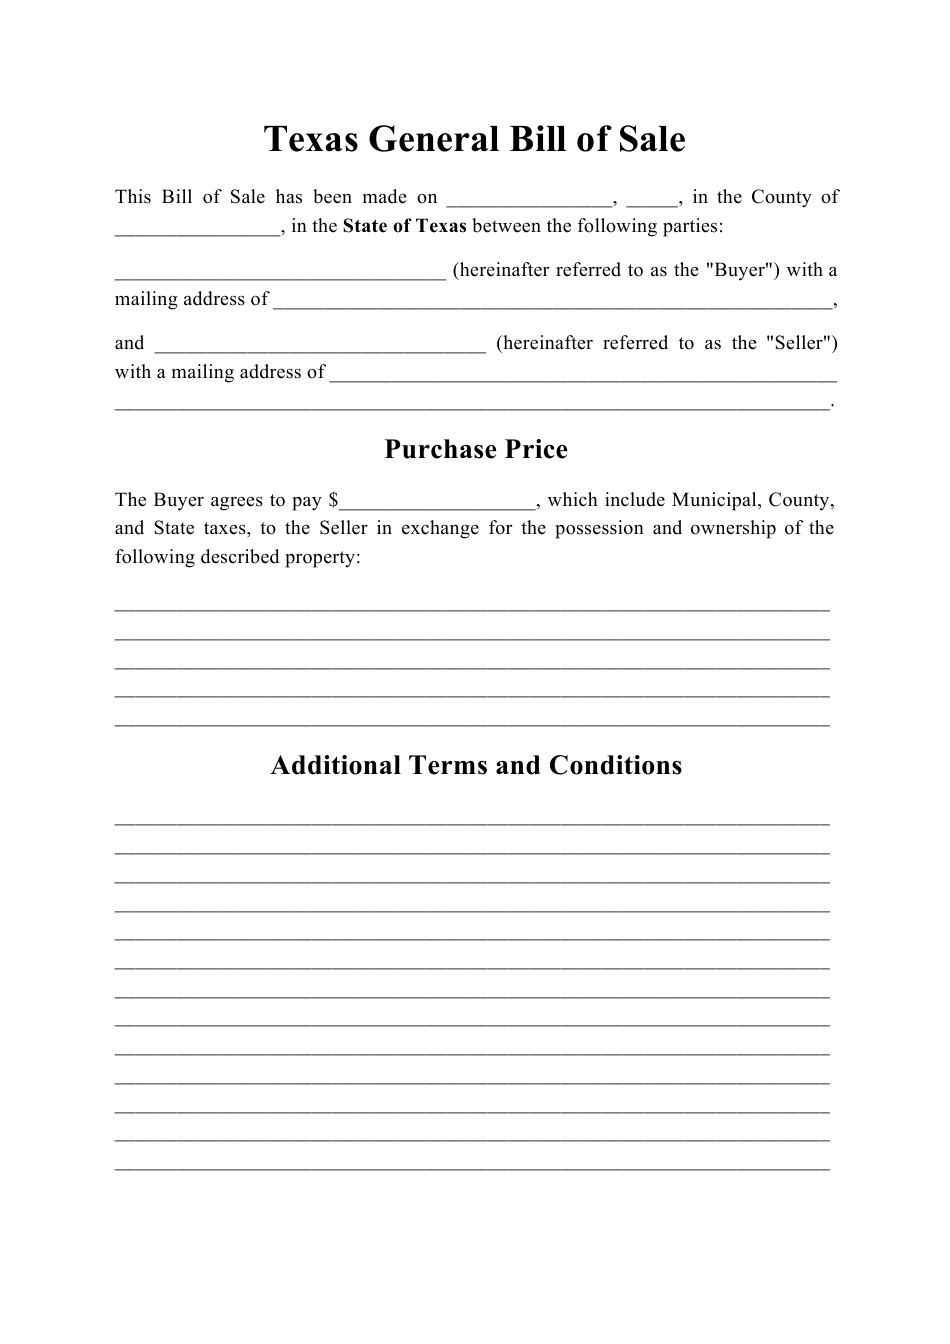 Texas Generic Bill Of Sale Download Printable Pdf Templateroller